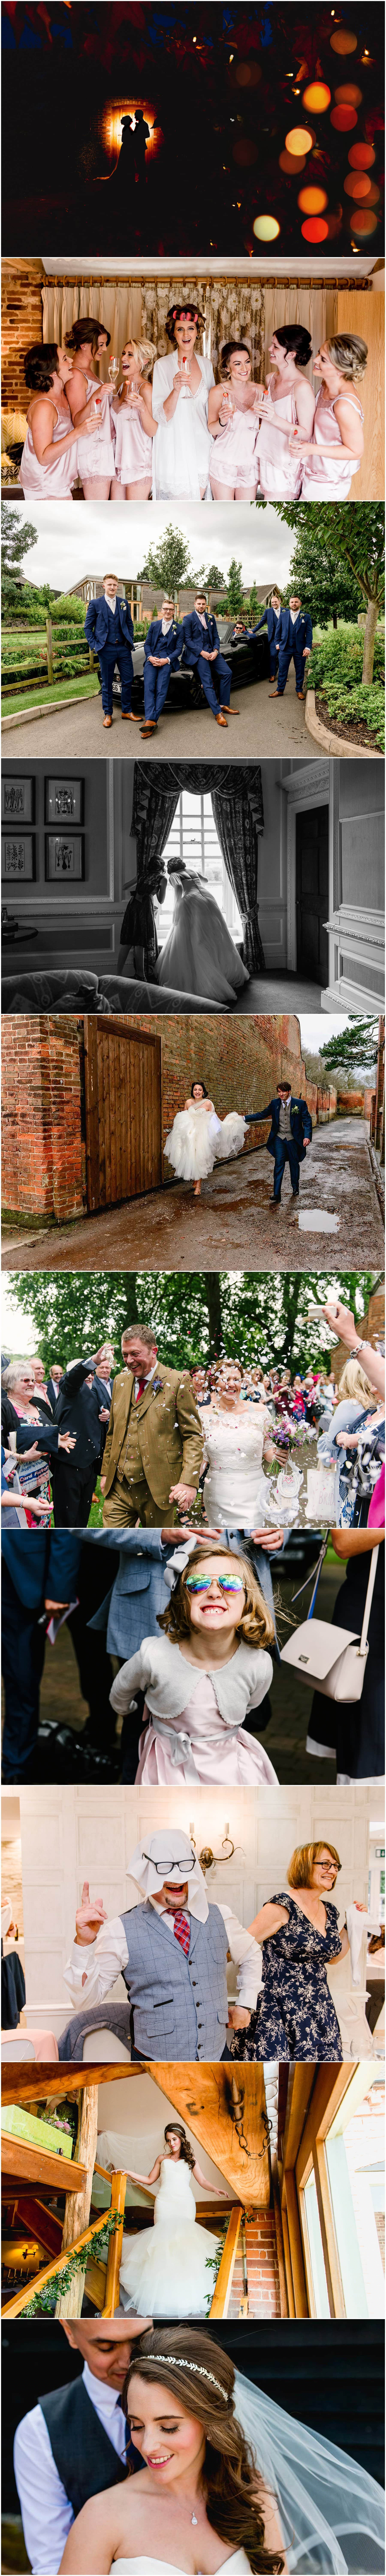 The best wedding photos of 2017 taken by West Midlands Wedding Photographer Lisa Carpenter Photography, Birmingham and Sutton Coldfield photographer shooting cool, contemporary, alternative and fun weddings.